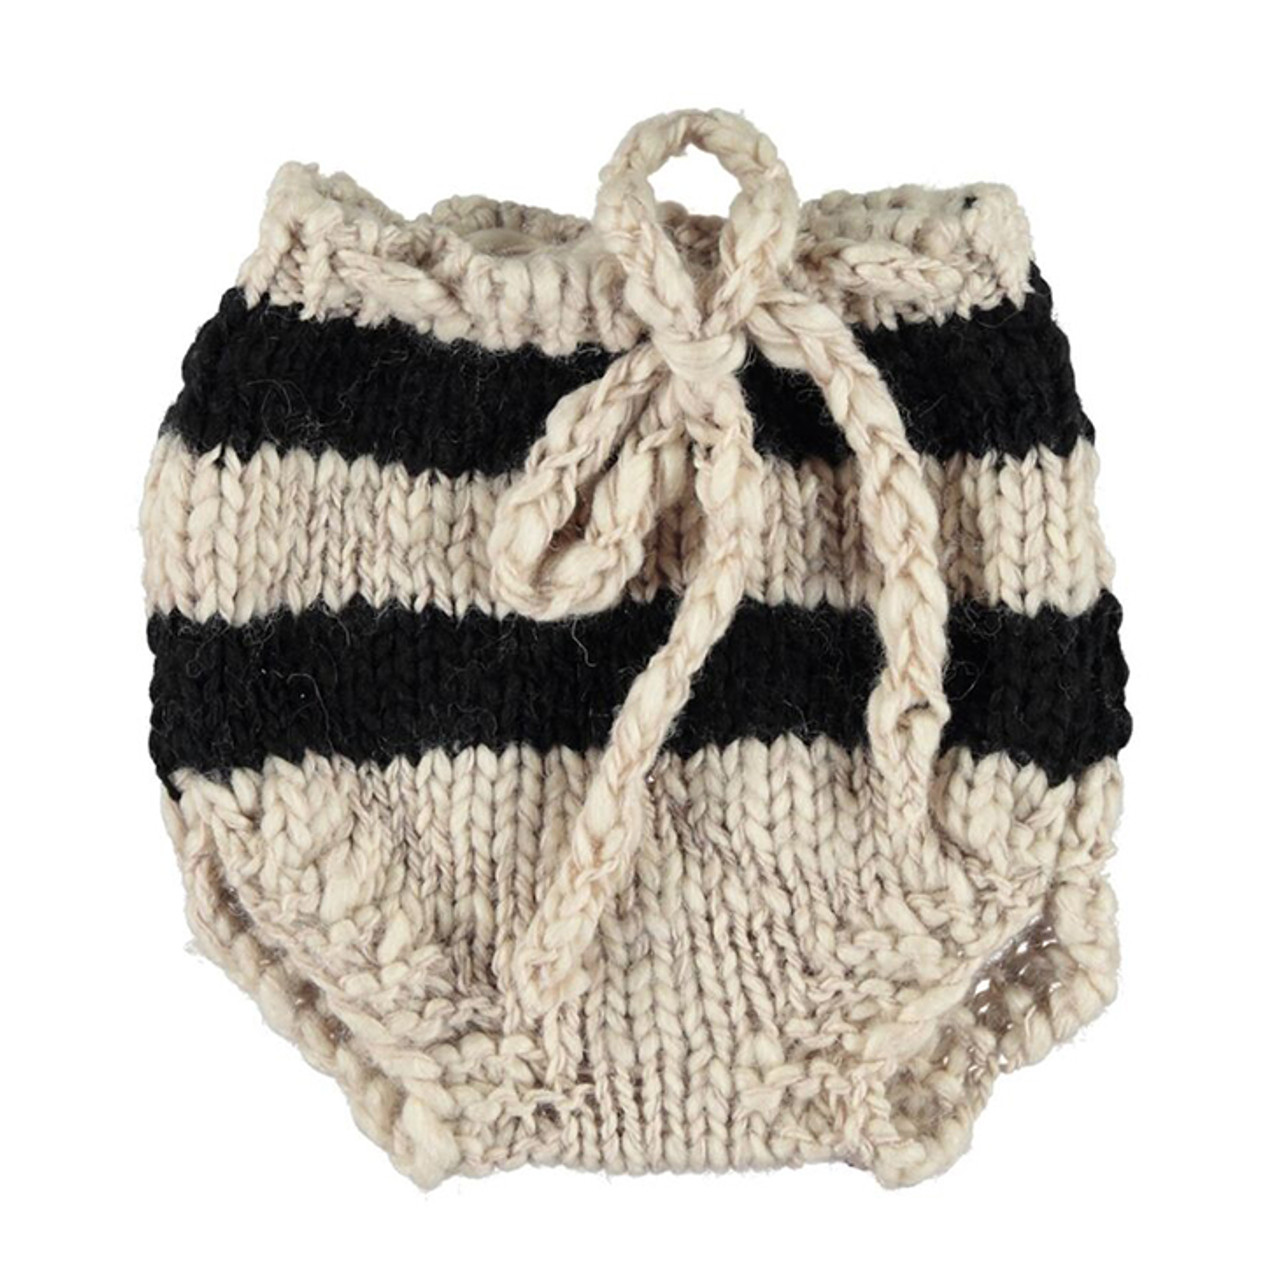 54427dccf Knitted Baby Shorties